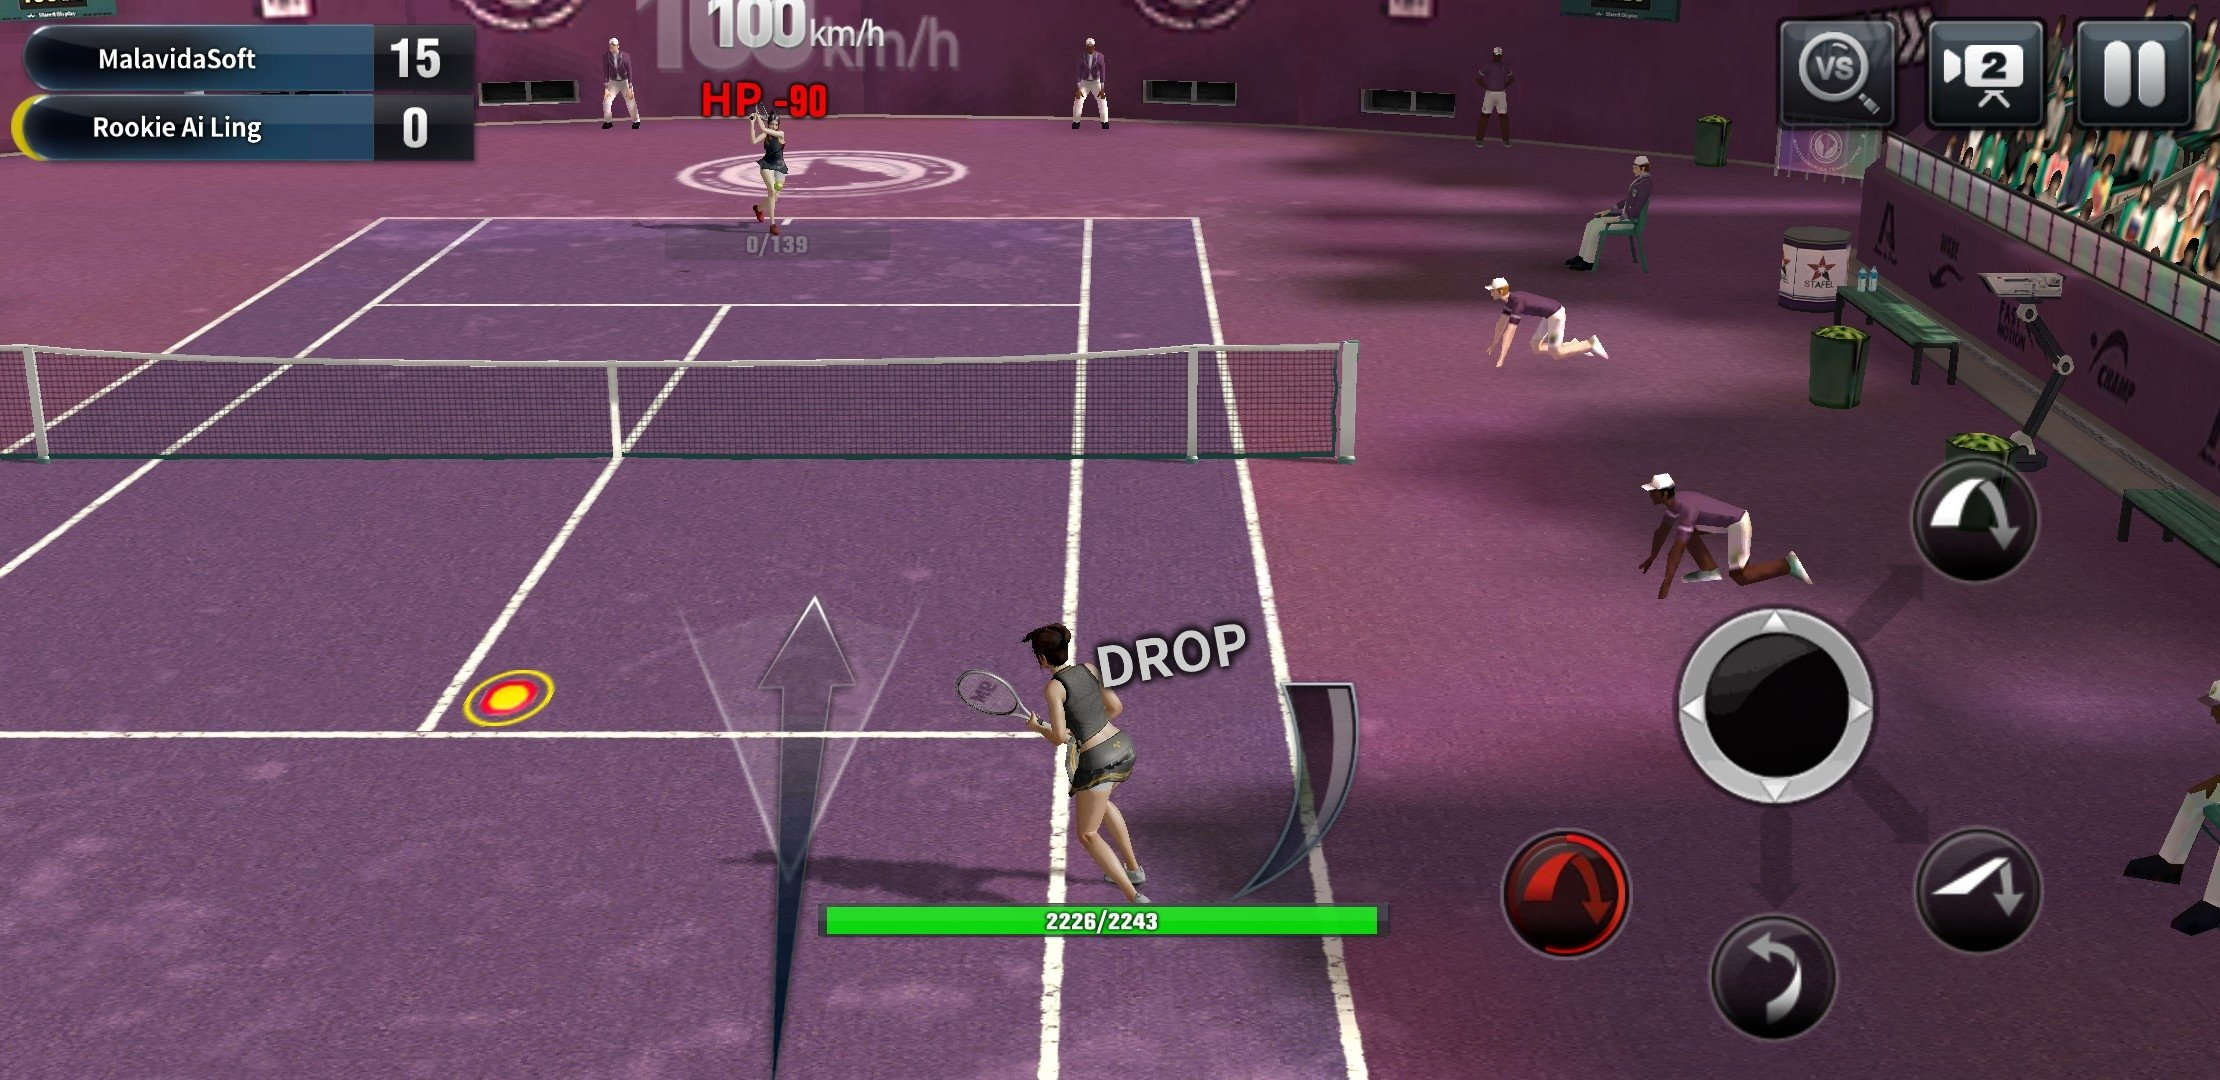 Ultimate Tennis Android image 8